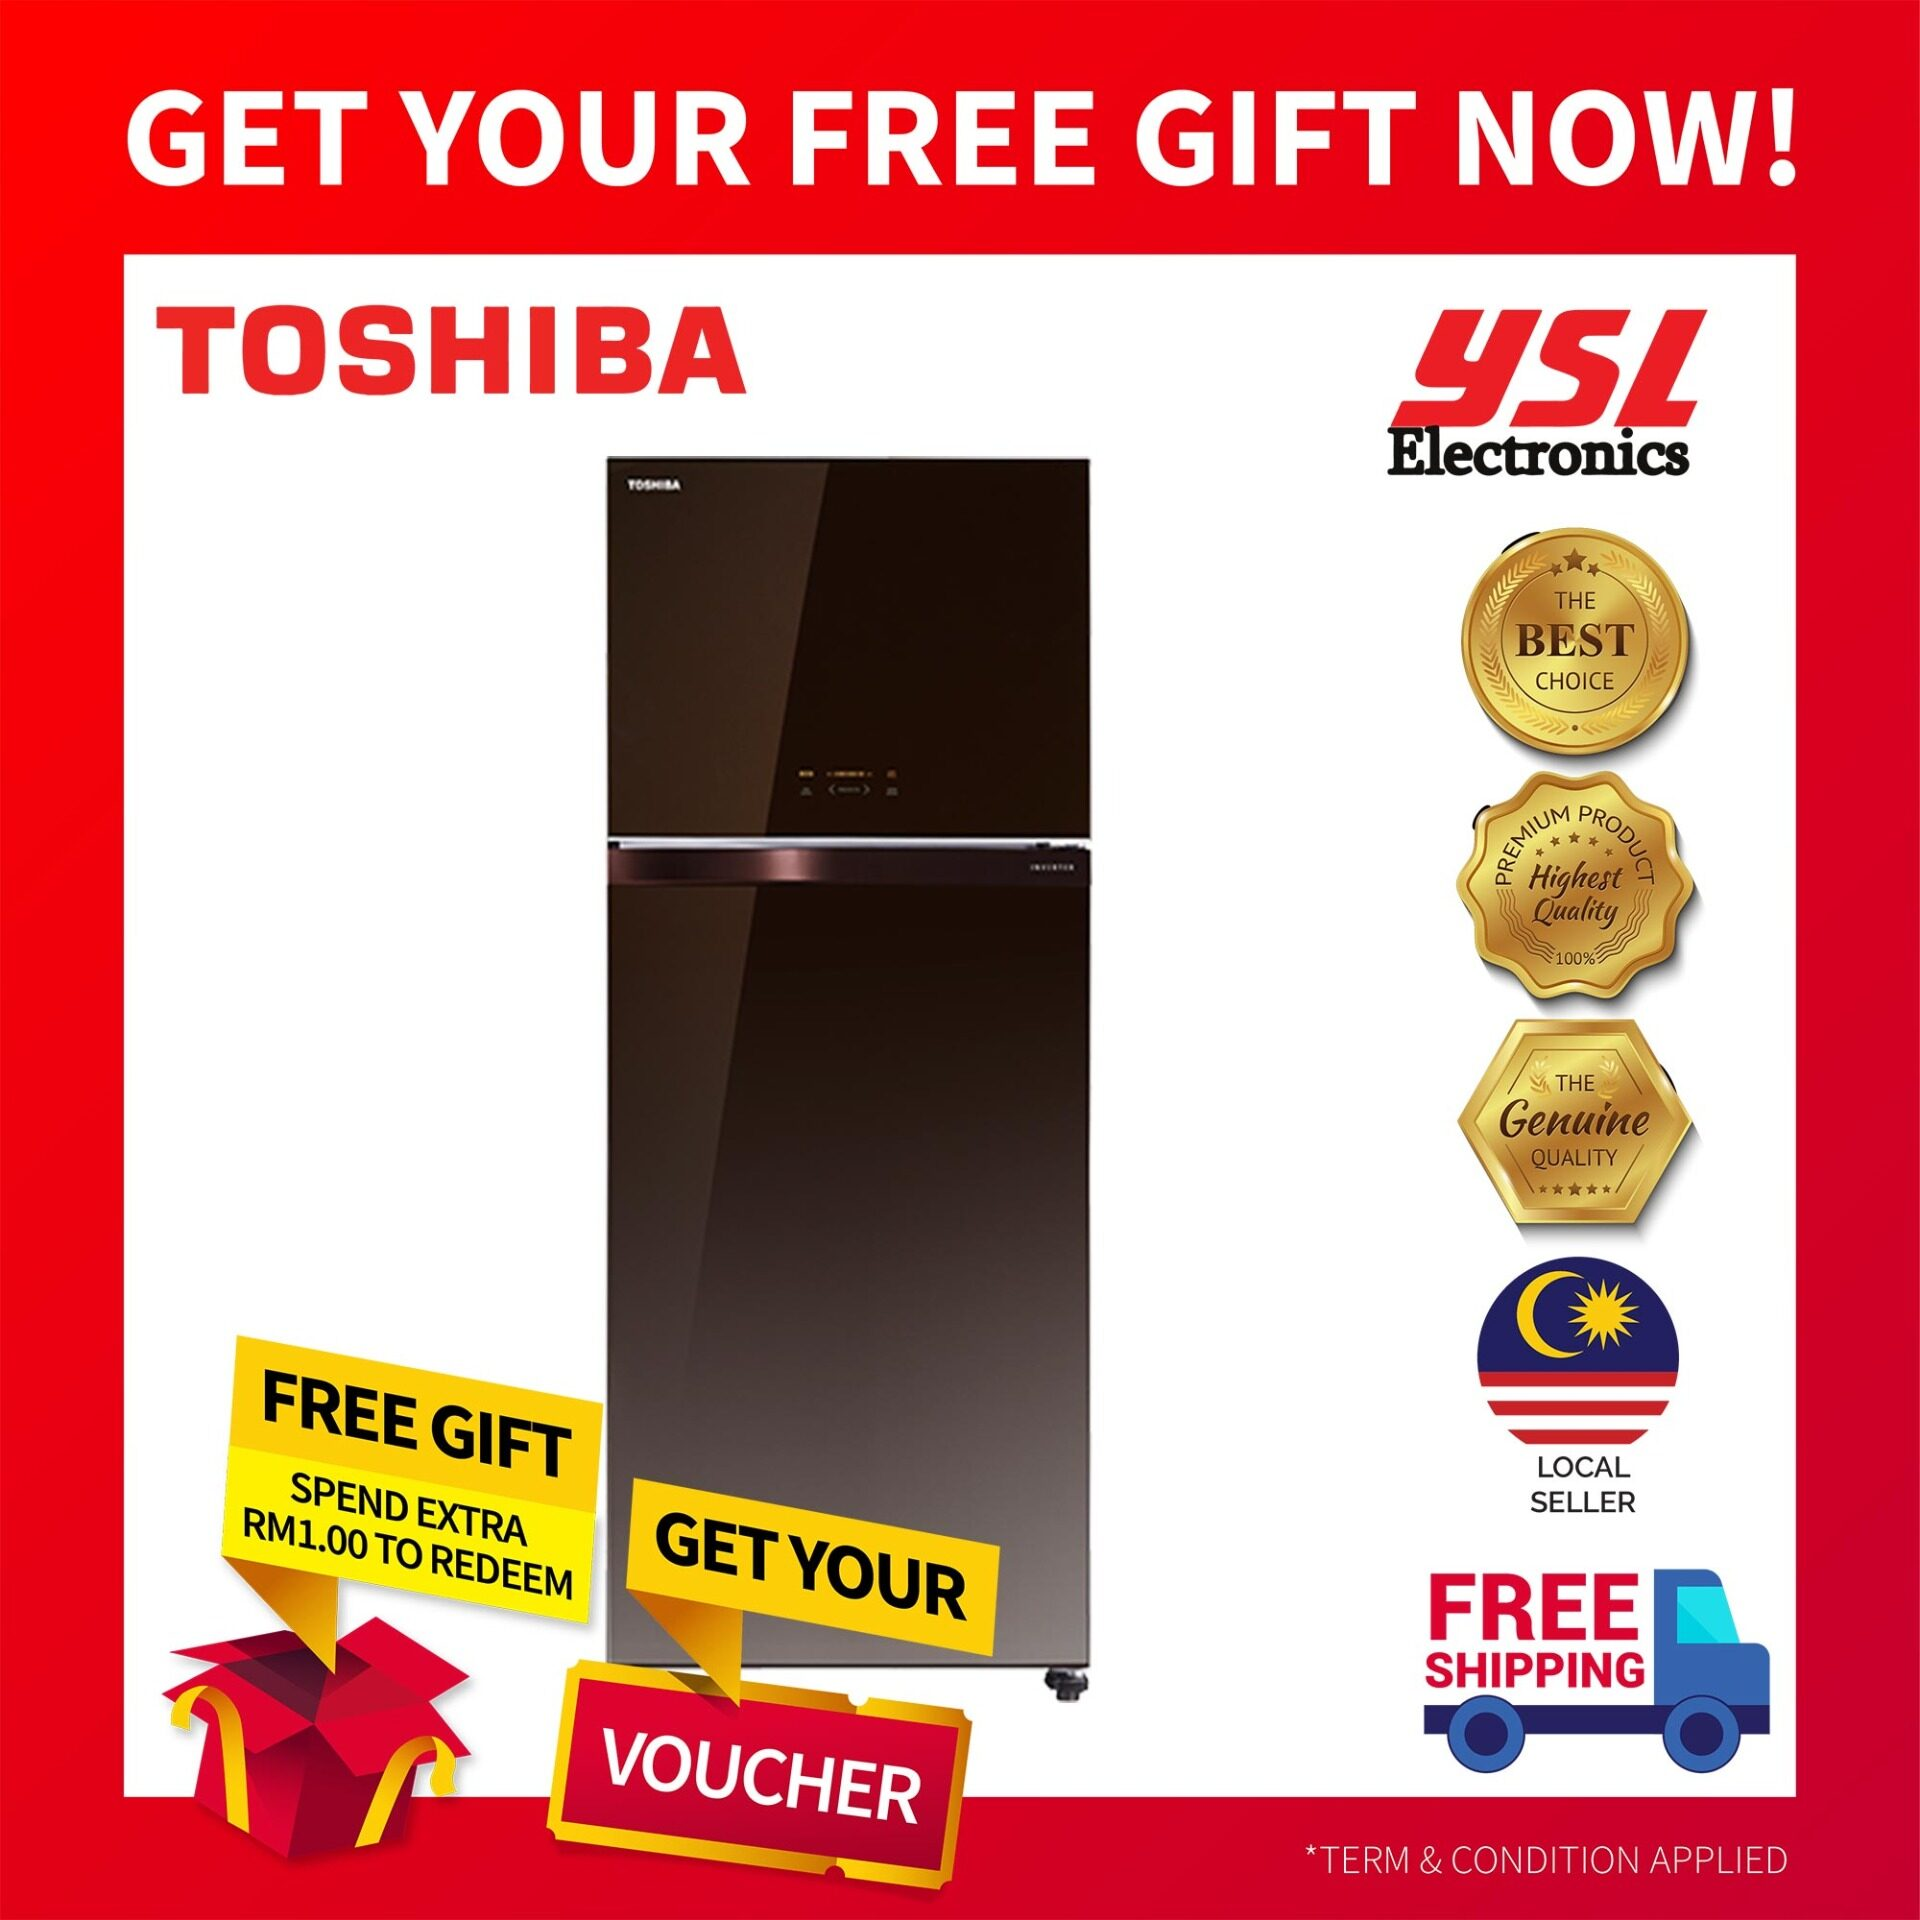 TOSHIBA GR-AG66MA (PGB) 2-DOORS DUO HYBRID, INVERTER REFRIGERATOR 661L C/W AUTO ICE MAKER (GLASS BROWN) + *FREE SHIPPING!*